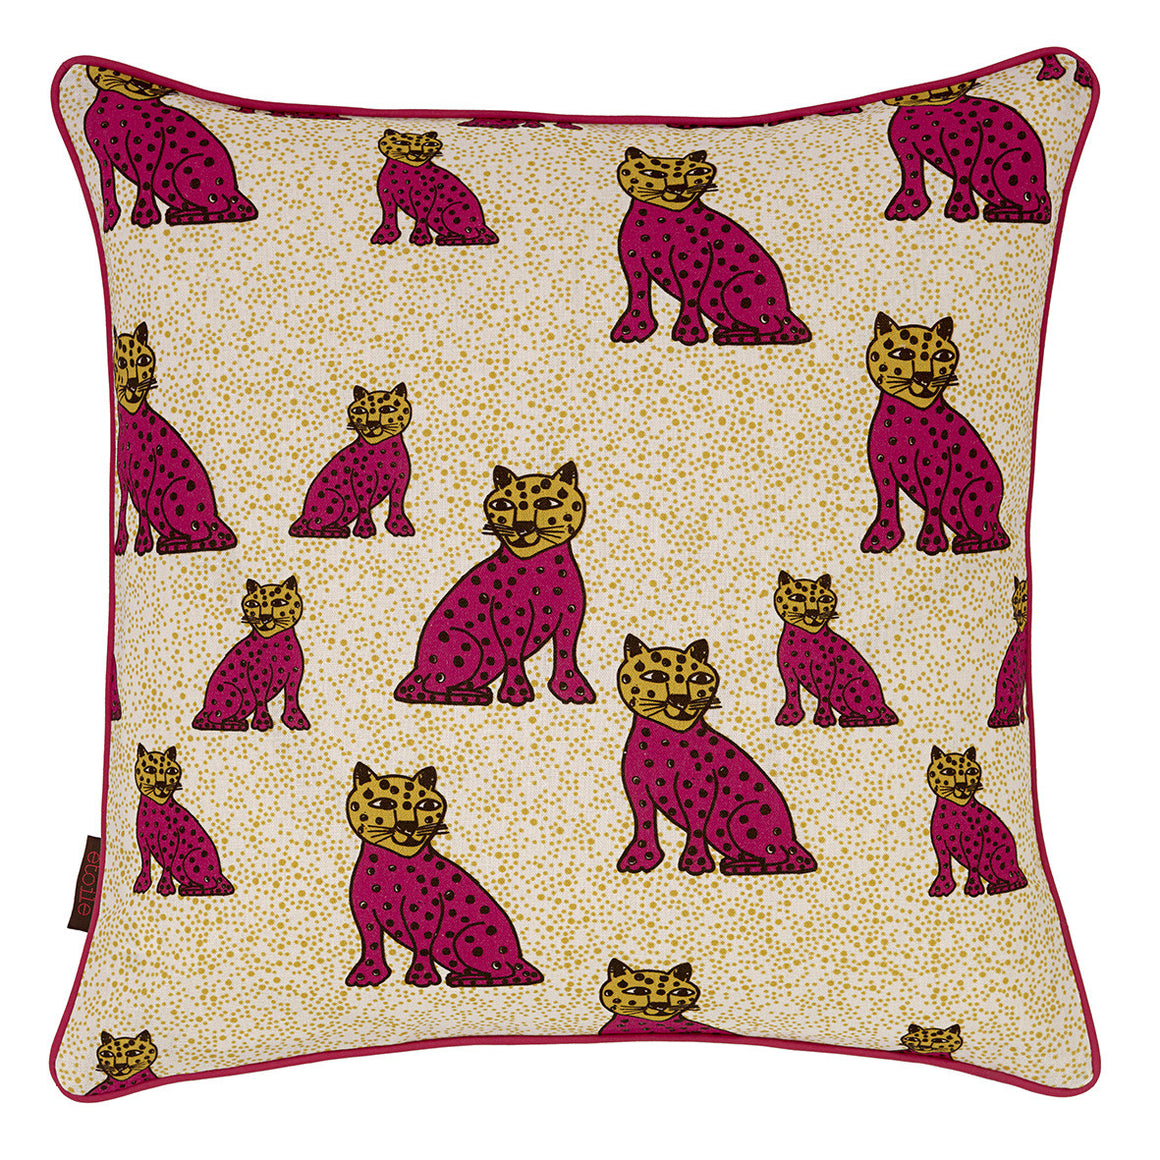 "Graphic Leopard Pattern Linen Union Printed Cushion in Fuchsia Pink & Chocolate Brown 45x45cm (18x18"" pillow)"